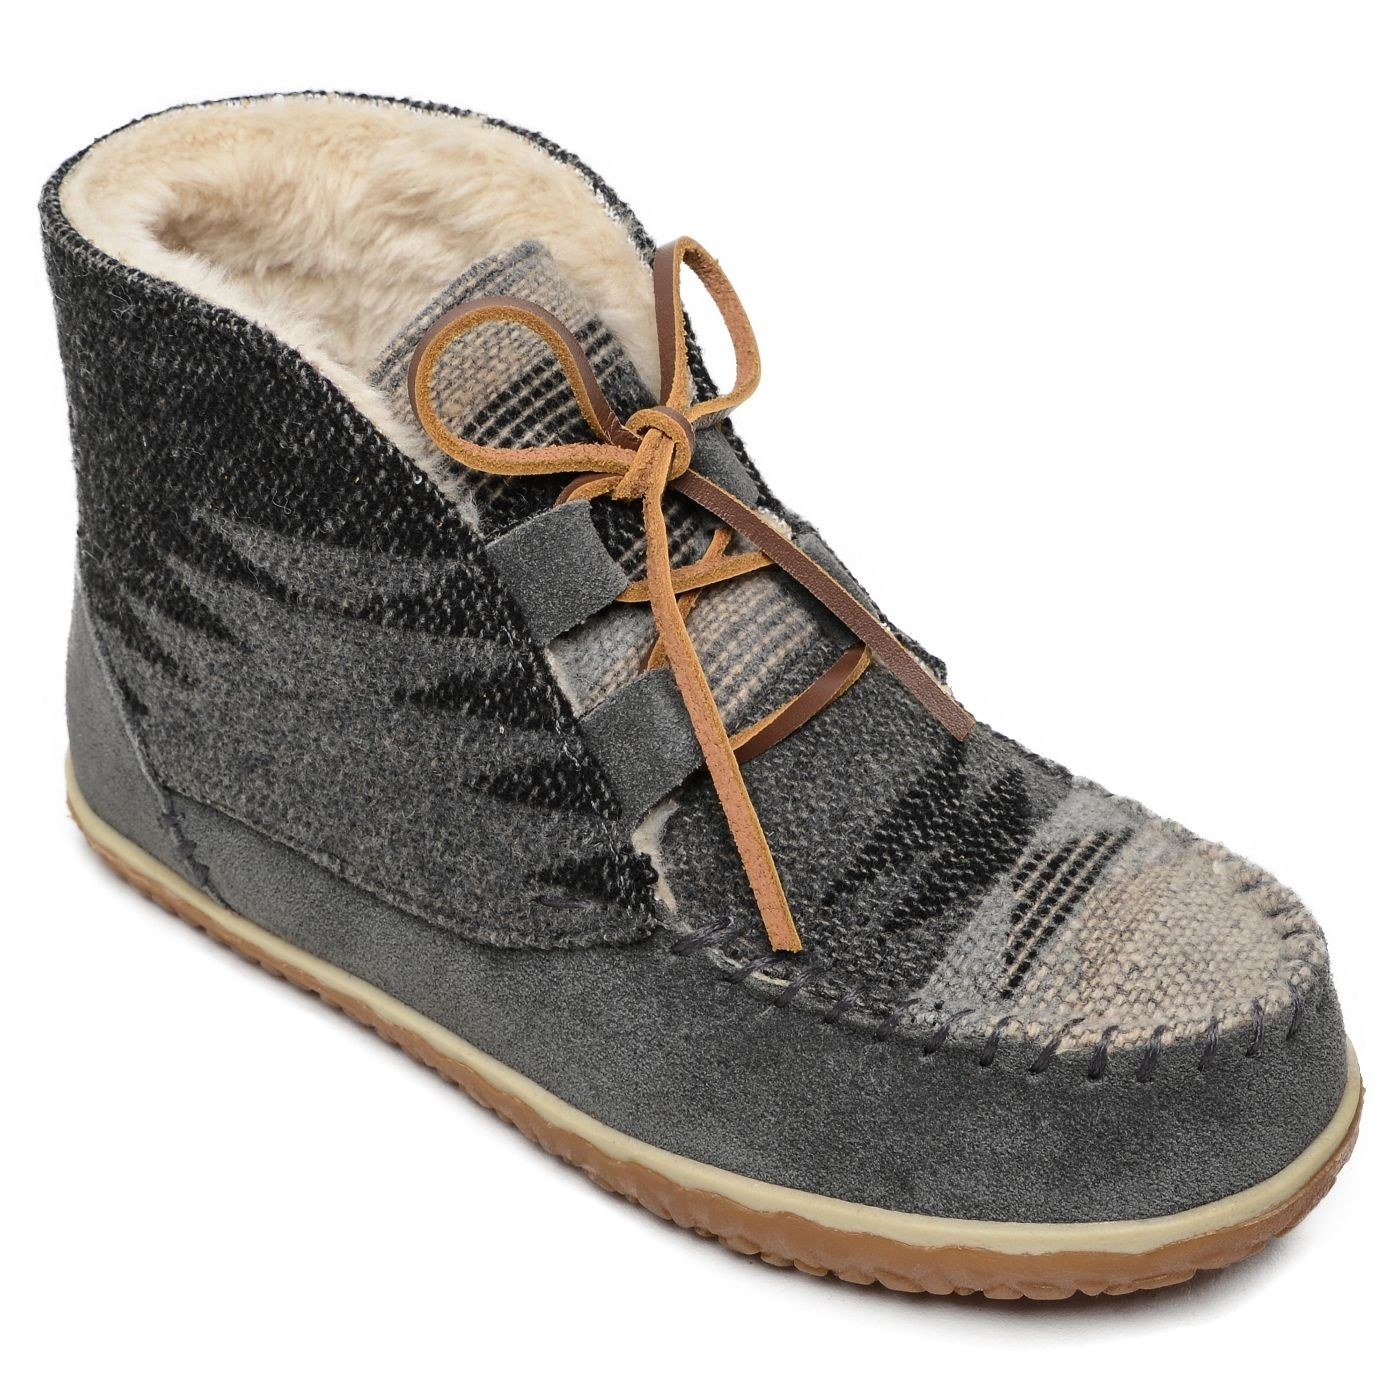 The boots in grey, with suede sides and printed fabric over the toes and on the sides of the booties